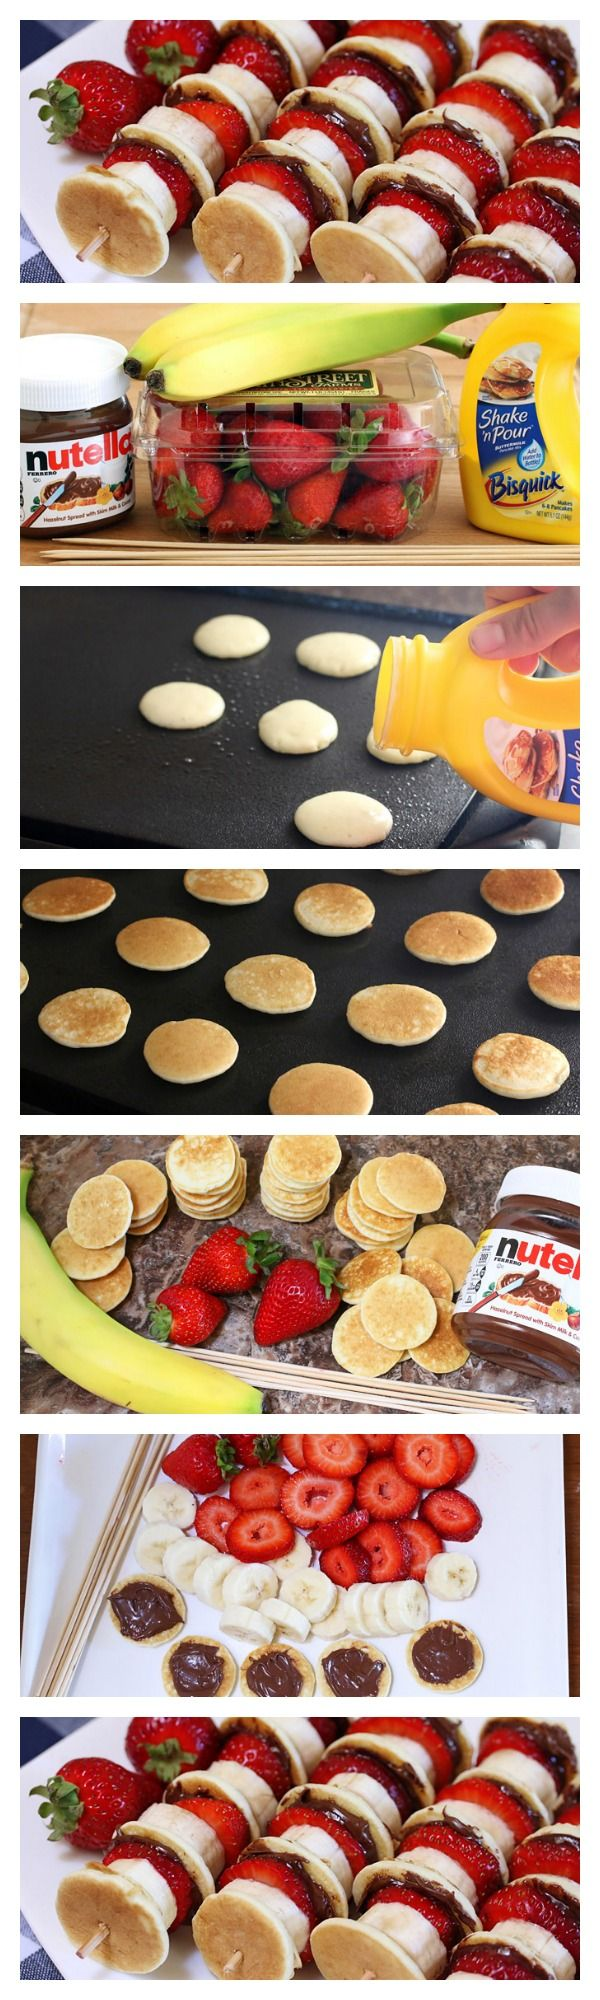 Nutella Mini Pancake Kabobs OMG!!! These look AMAZING!! TH>>> great idea for a brunch